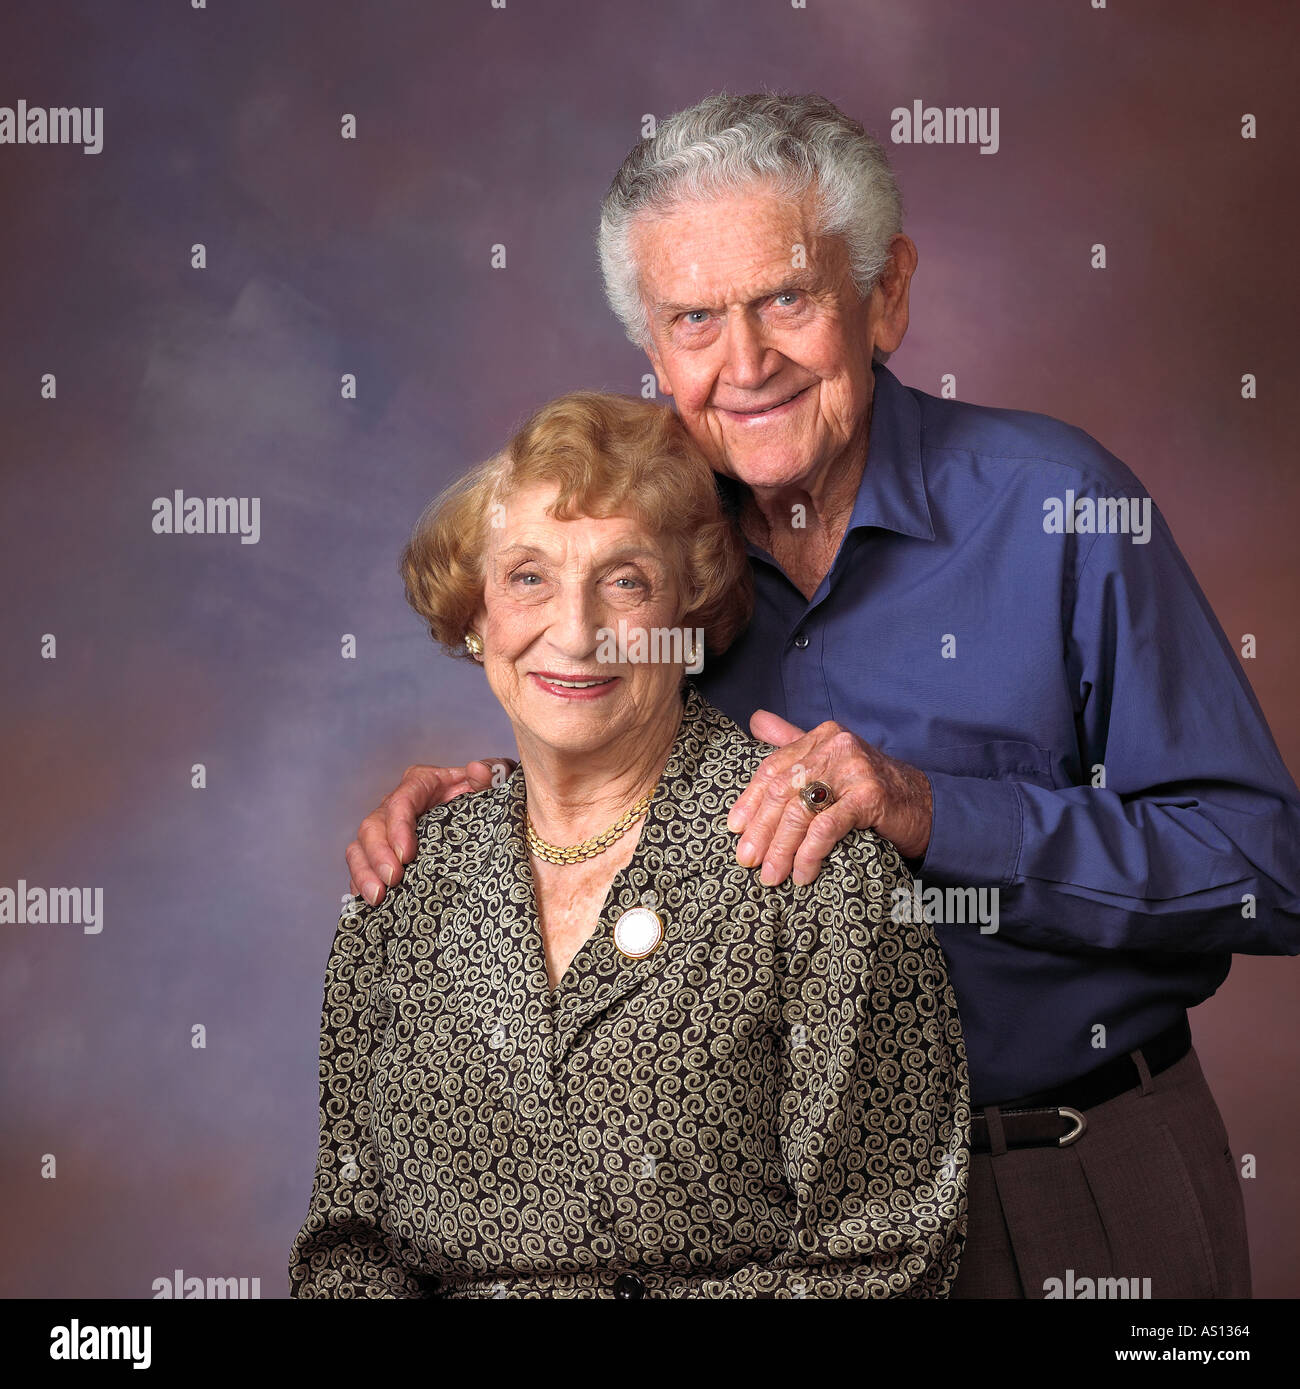 An senior couple portrait man standing behind woman his hands on her shoulders against a modeled background - Stock Image